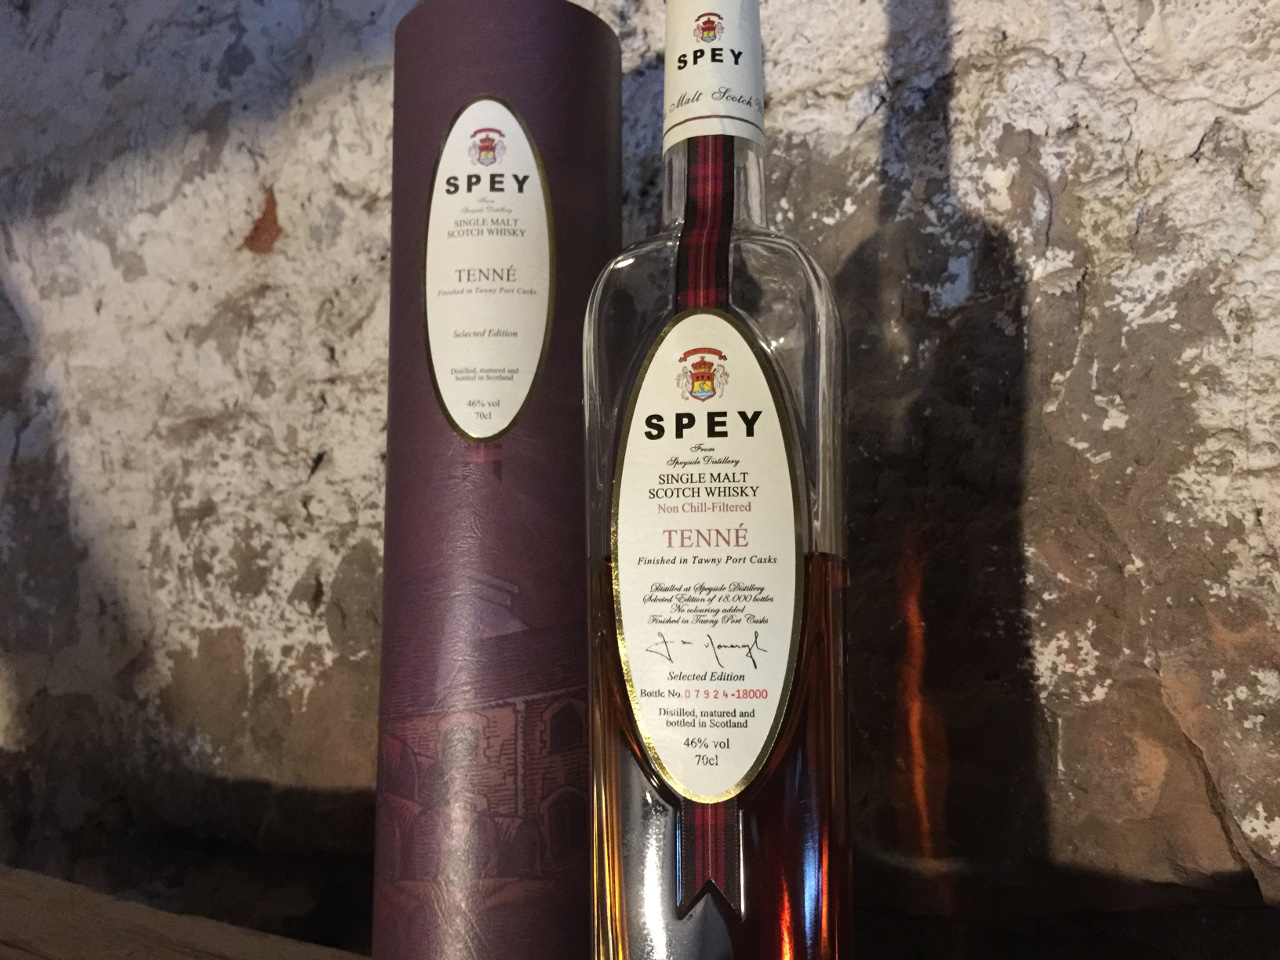 Spey Tenné Selected Edtion